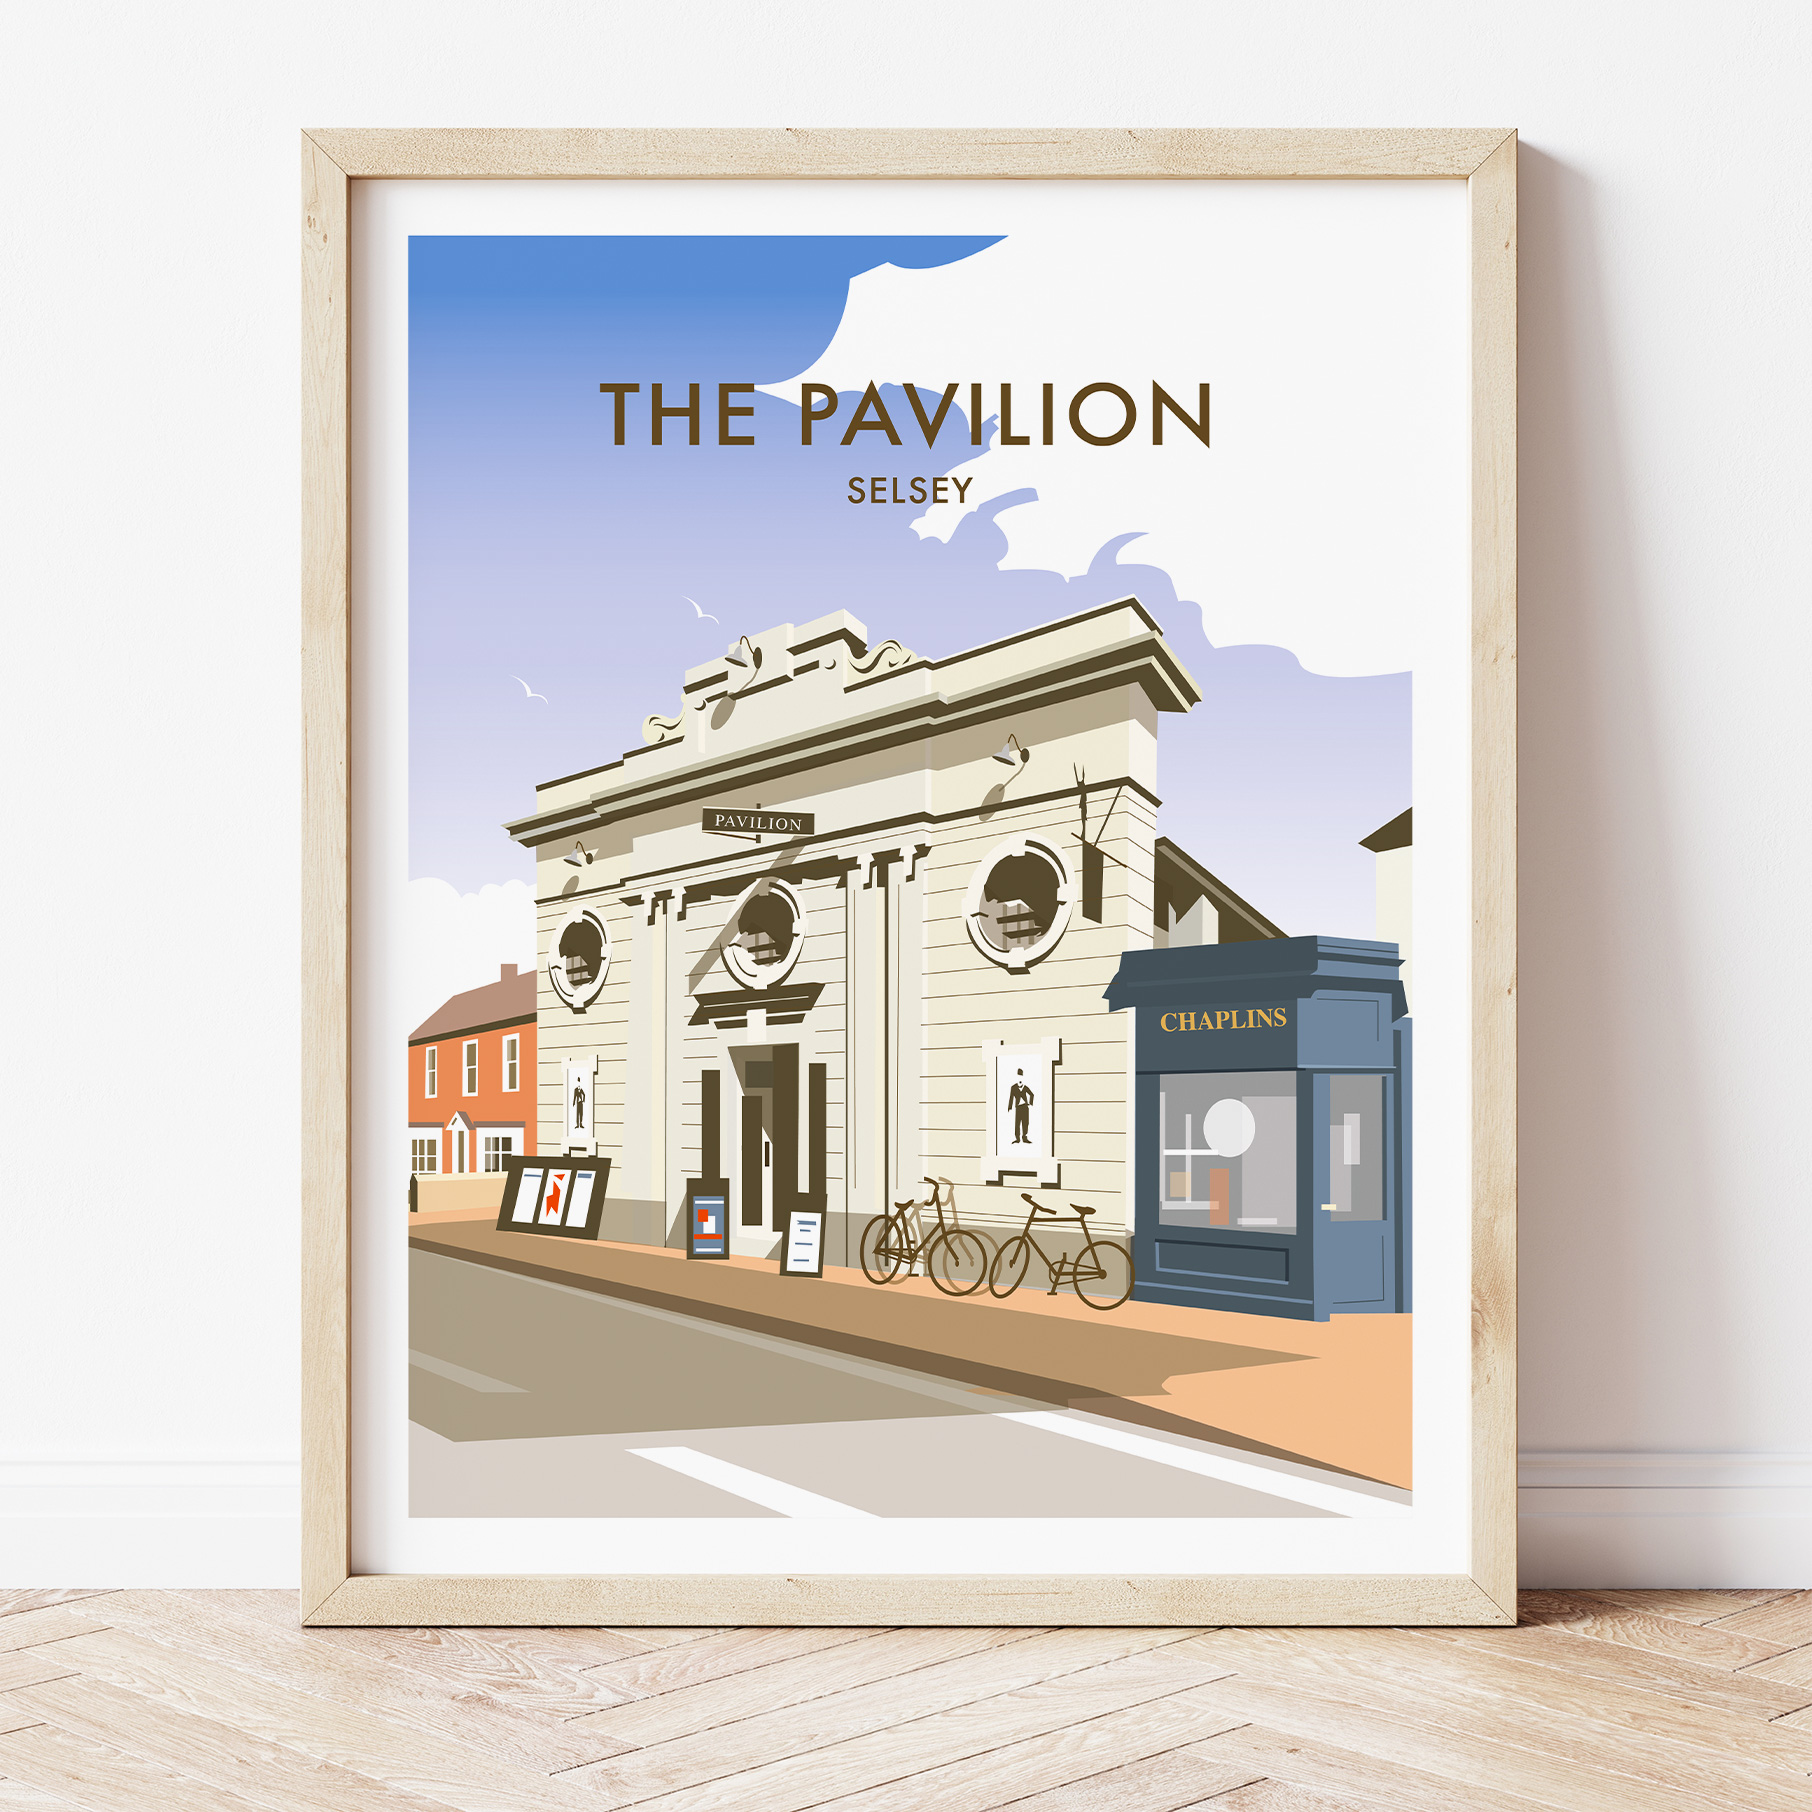 Selsey Pavilion charity art print by Dave Thompson